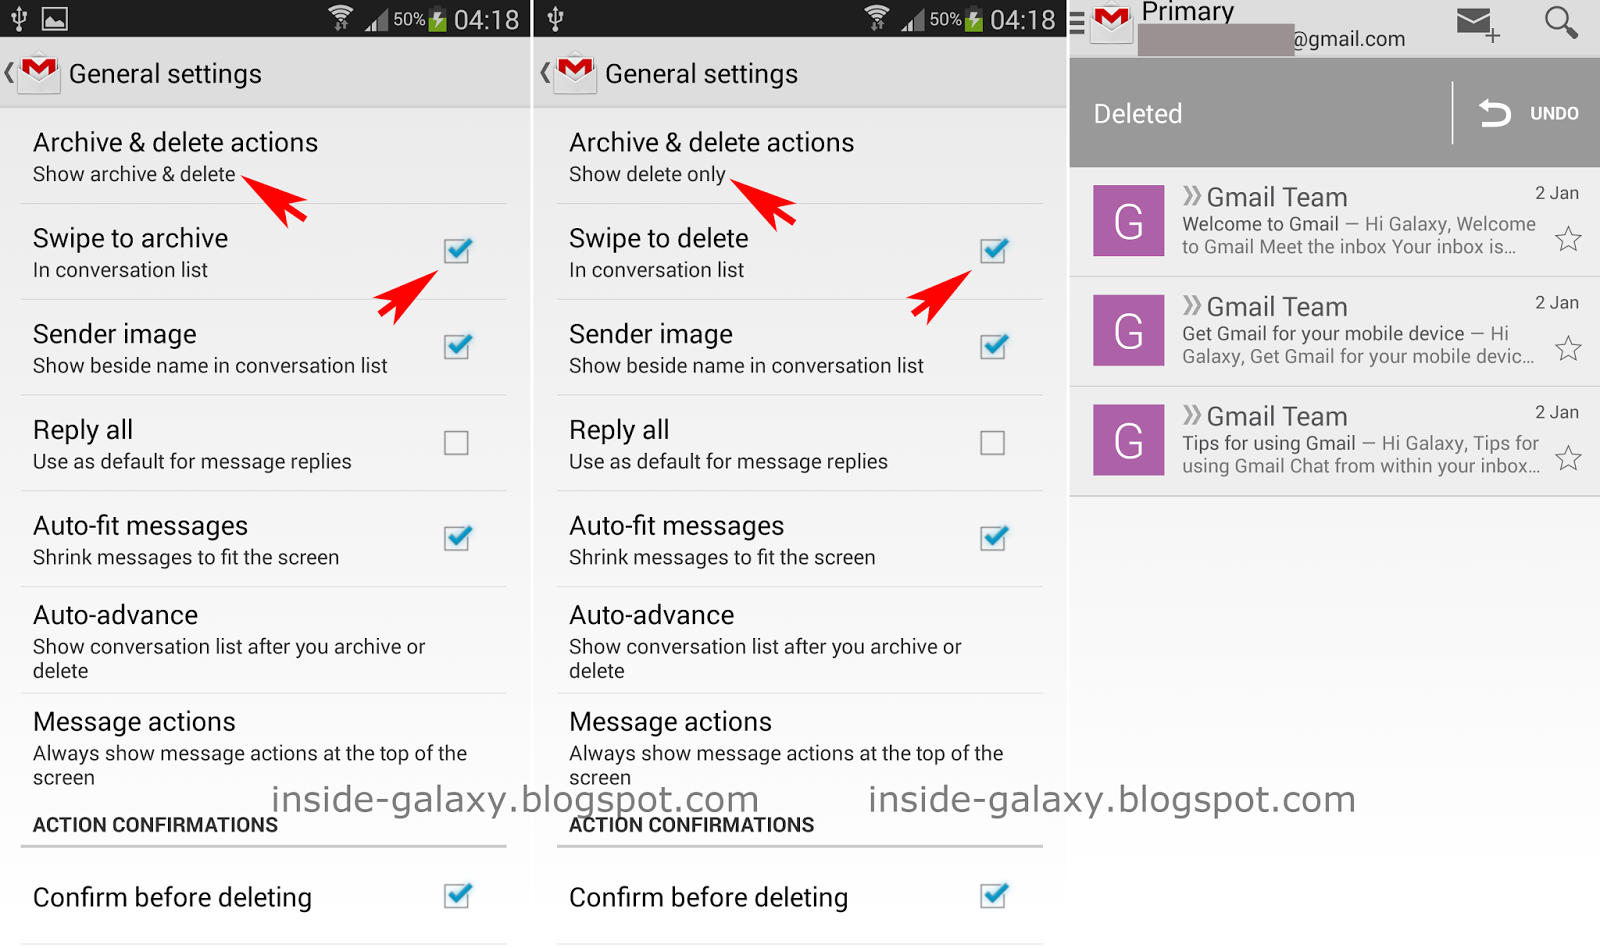 Samsung Galaxy S4: How to Make Swiping Archive or Delete in